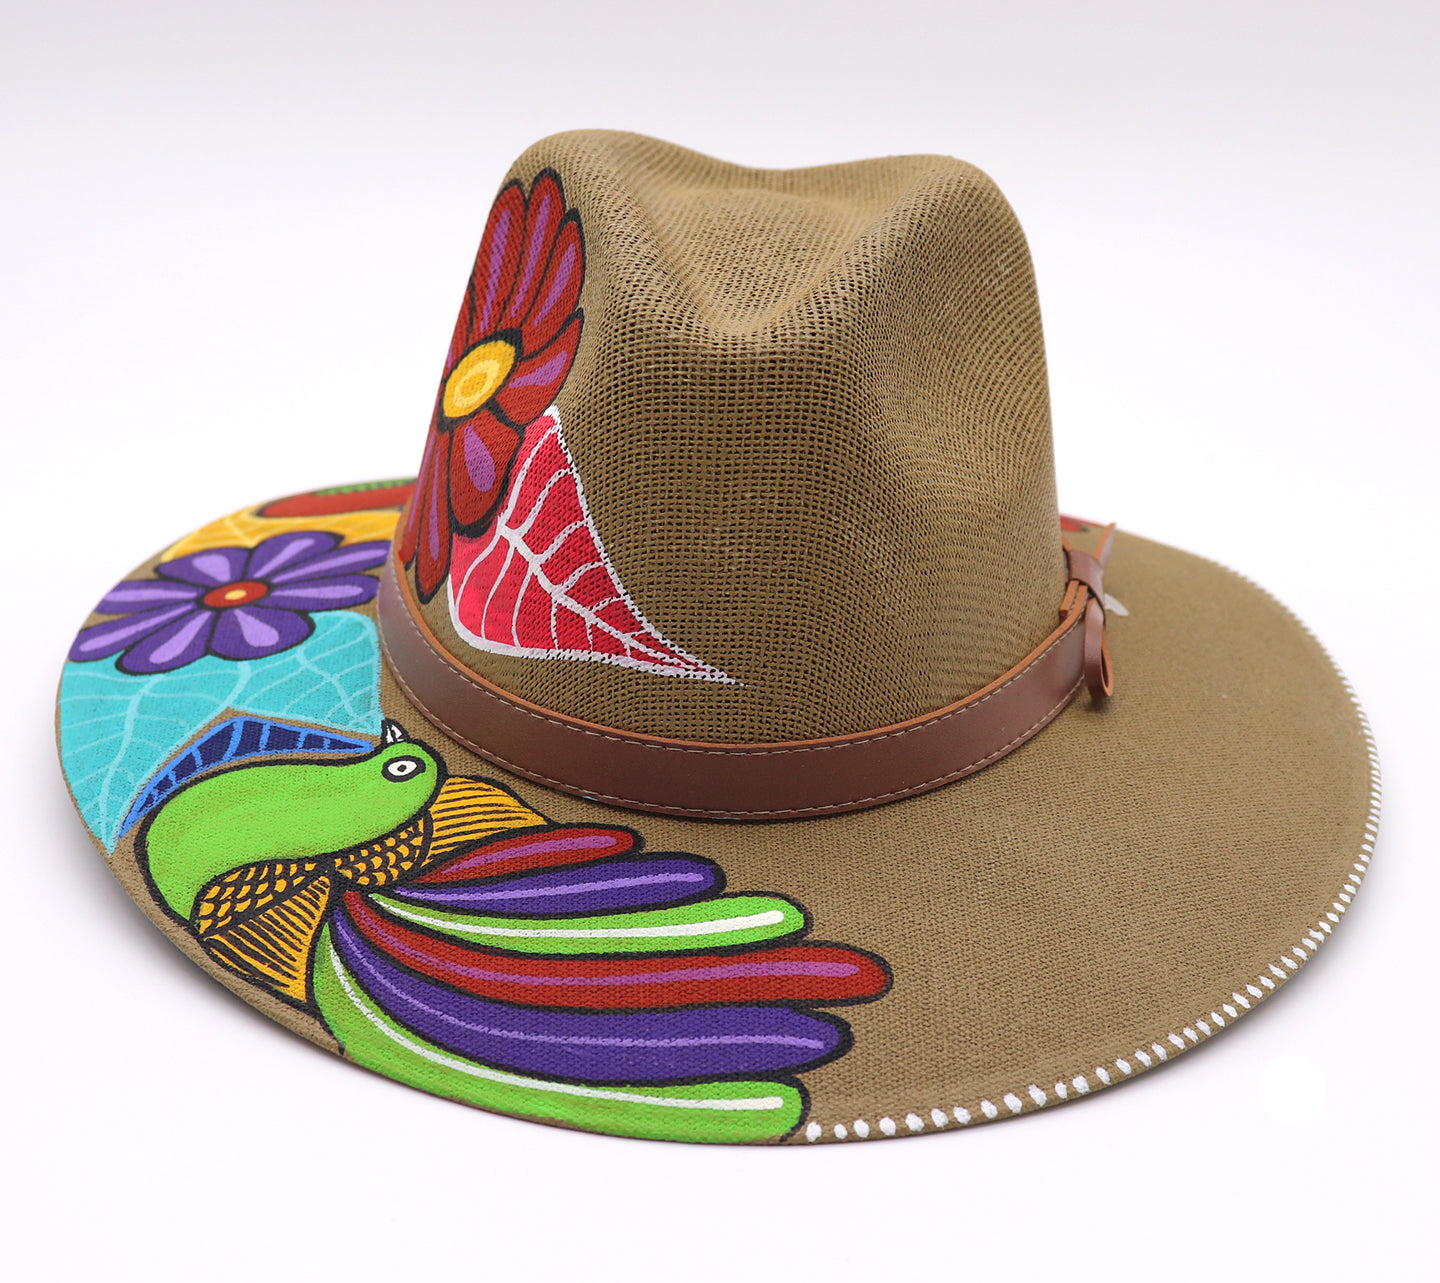 Back of Hat. Adult hat uniquely hand painted by local mexican artist. Sombrero hat are comfortable and offer nice shade for summer heat protection and keeping cool. Great cultural piece or gift for a loved one. Each design is unique. Khaki Hat with light brown belt, and flowers and birds design.